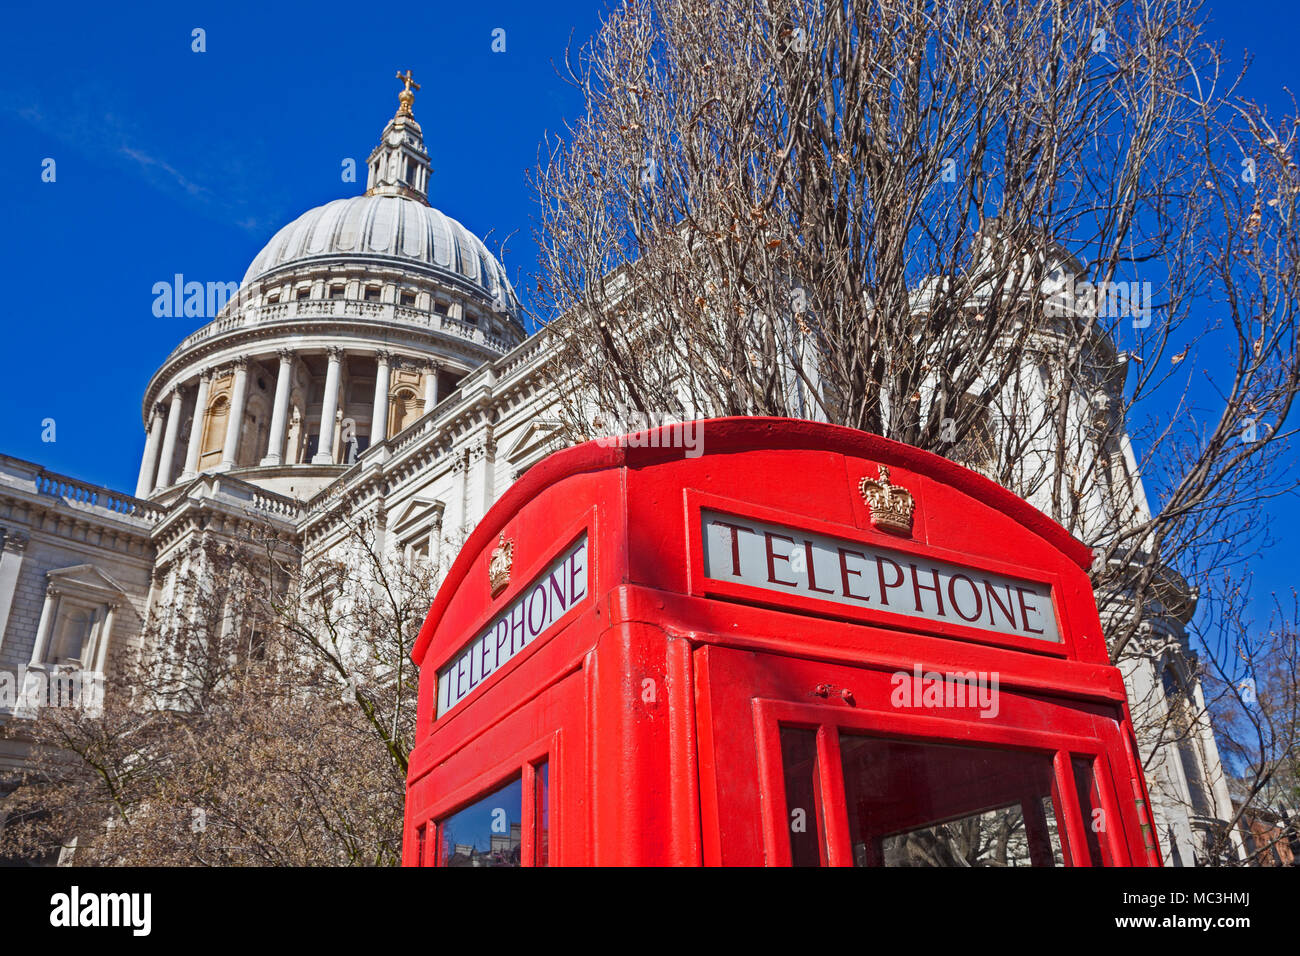 City of London   A traditional red telephone box in St Paul's Cathedral Gardens contrasting with the cathedral itself - Stock Image